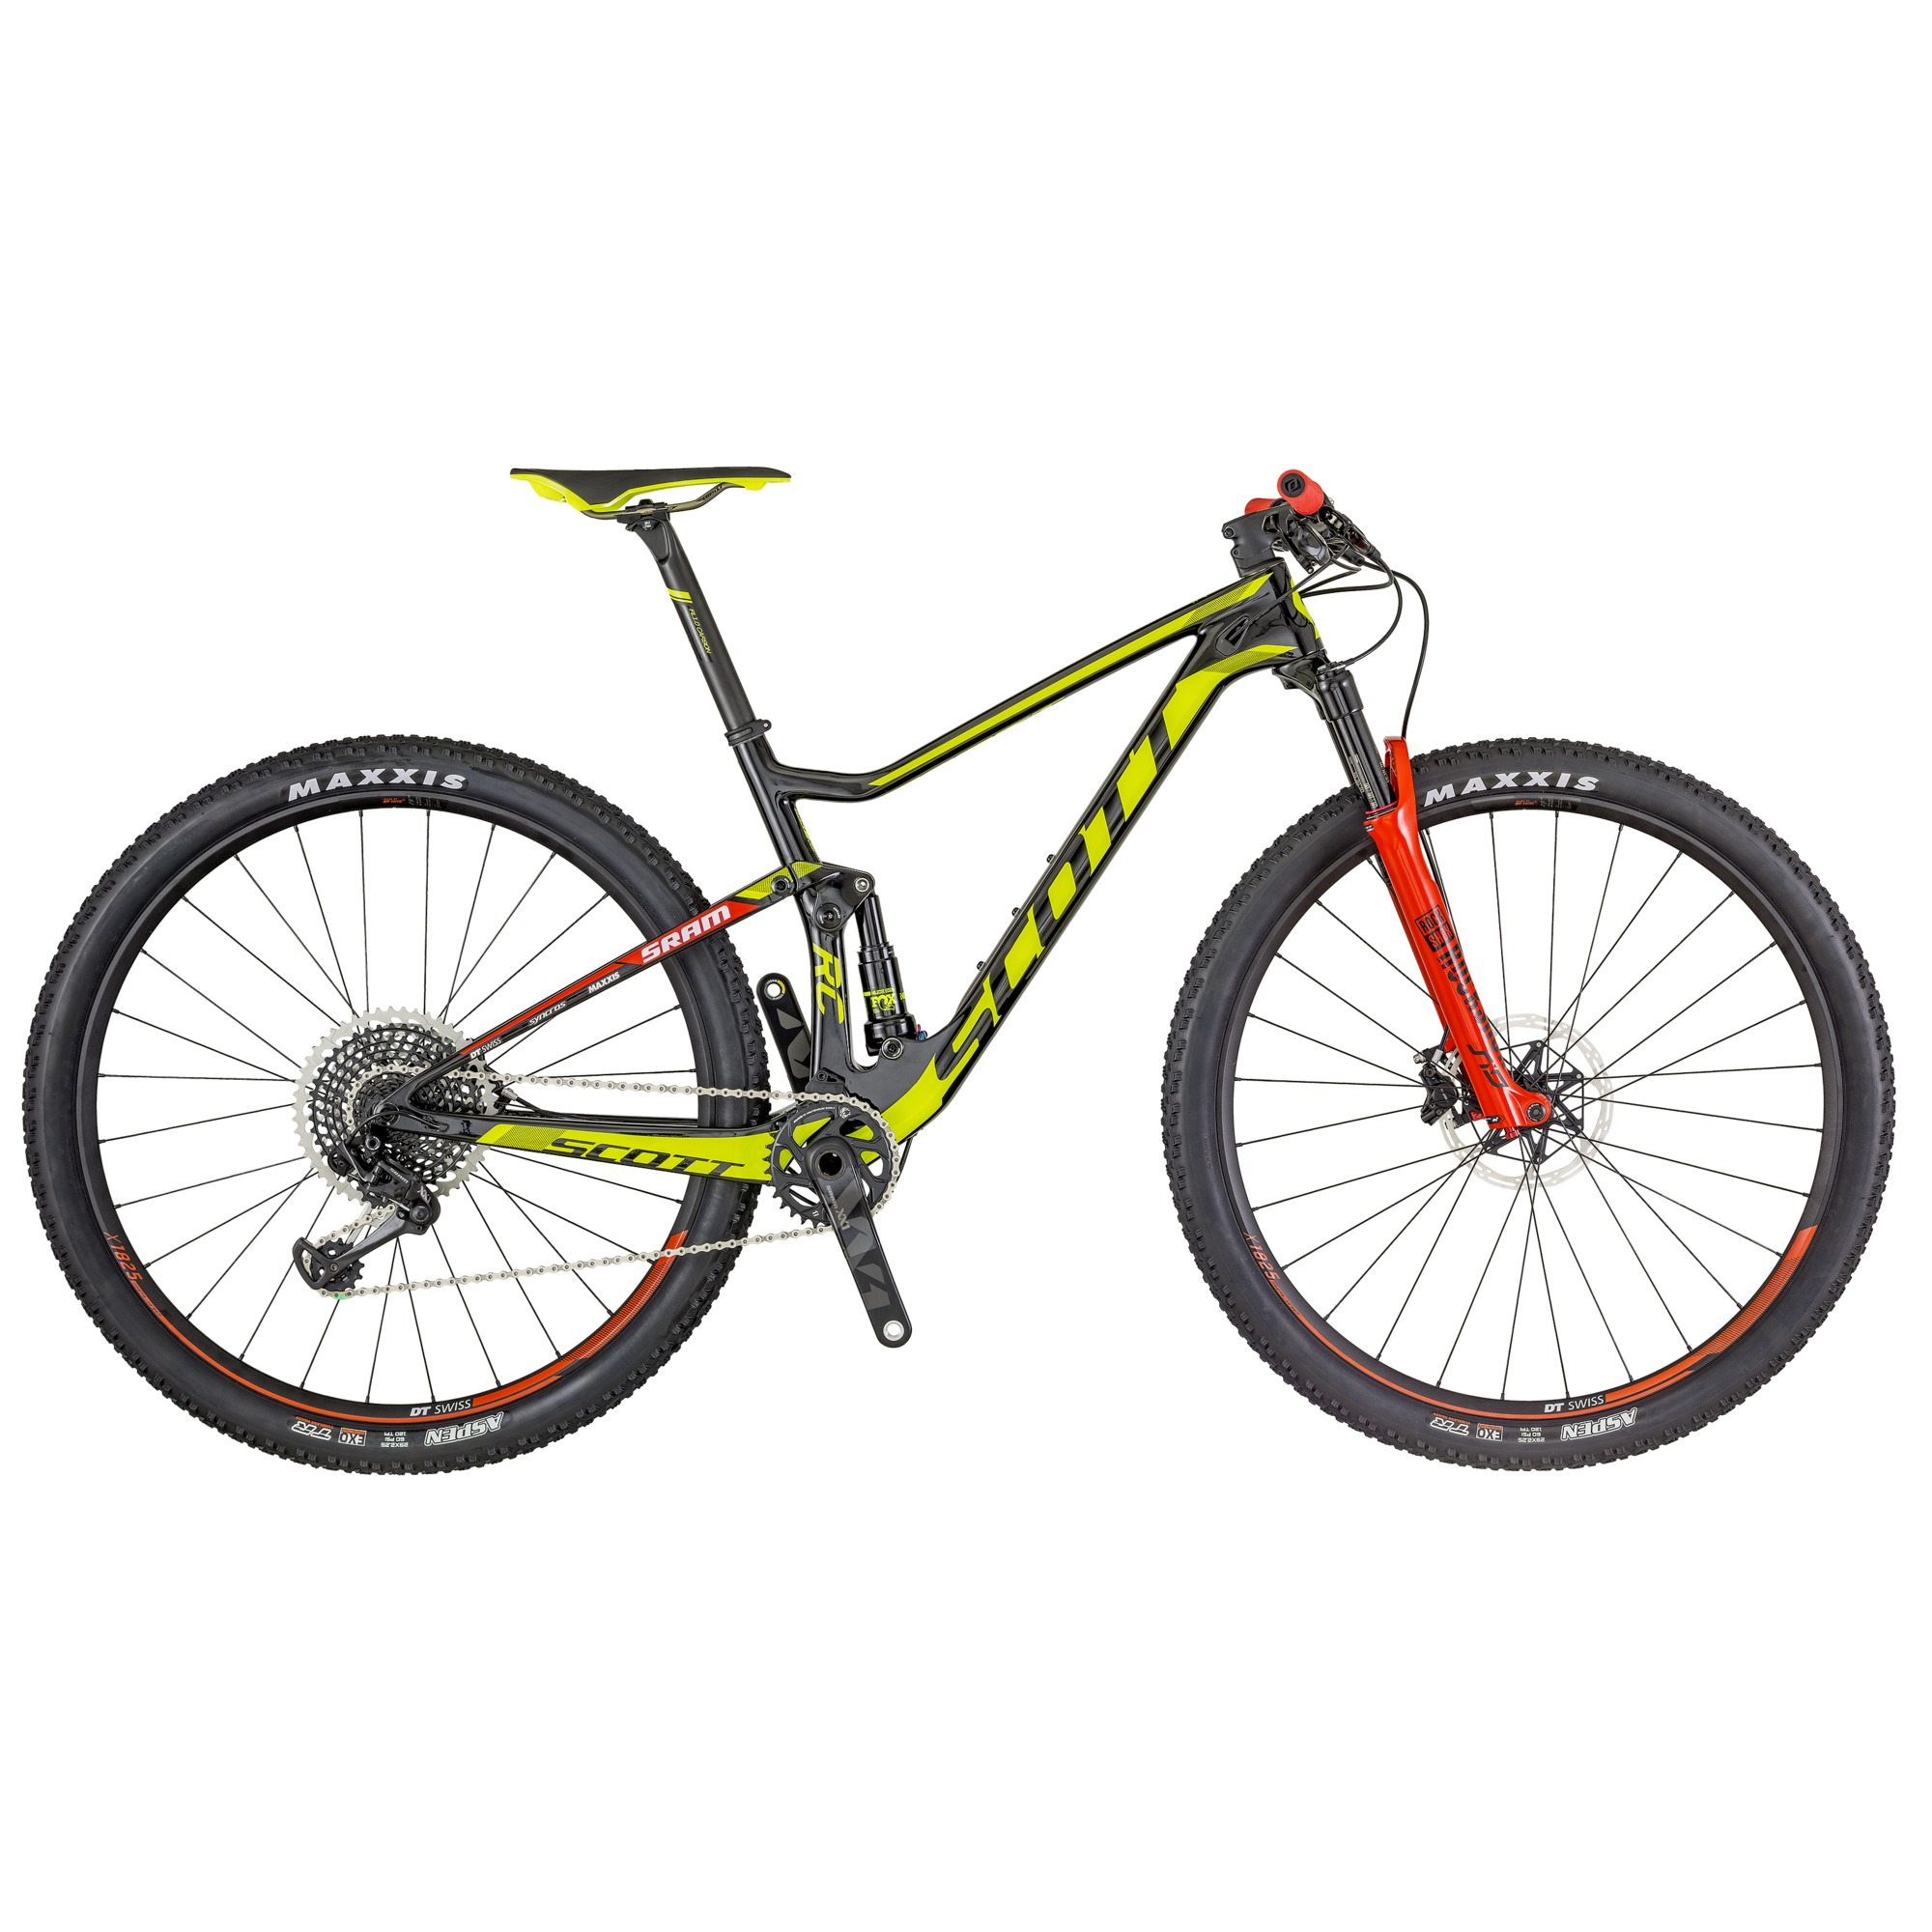 SCOTT Spark RC 900 World Cup Bike L - Zweirad Homann